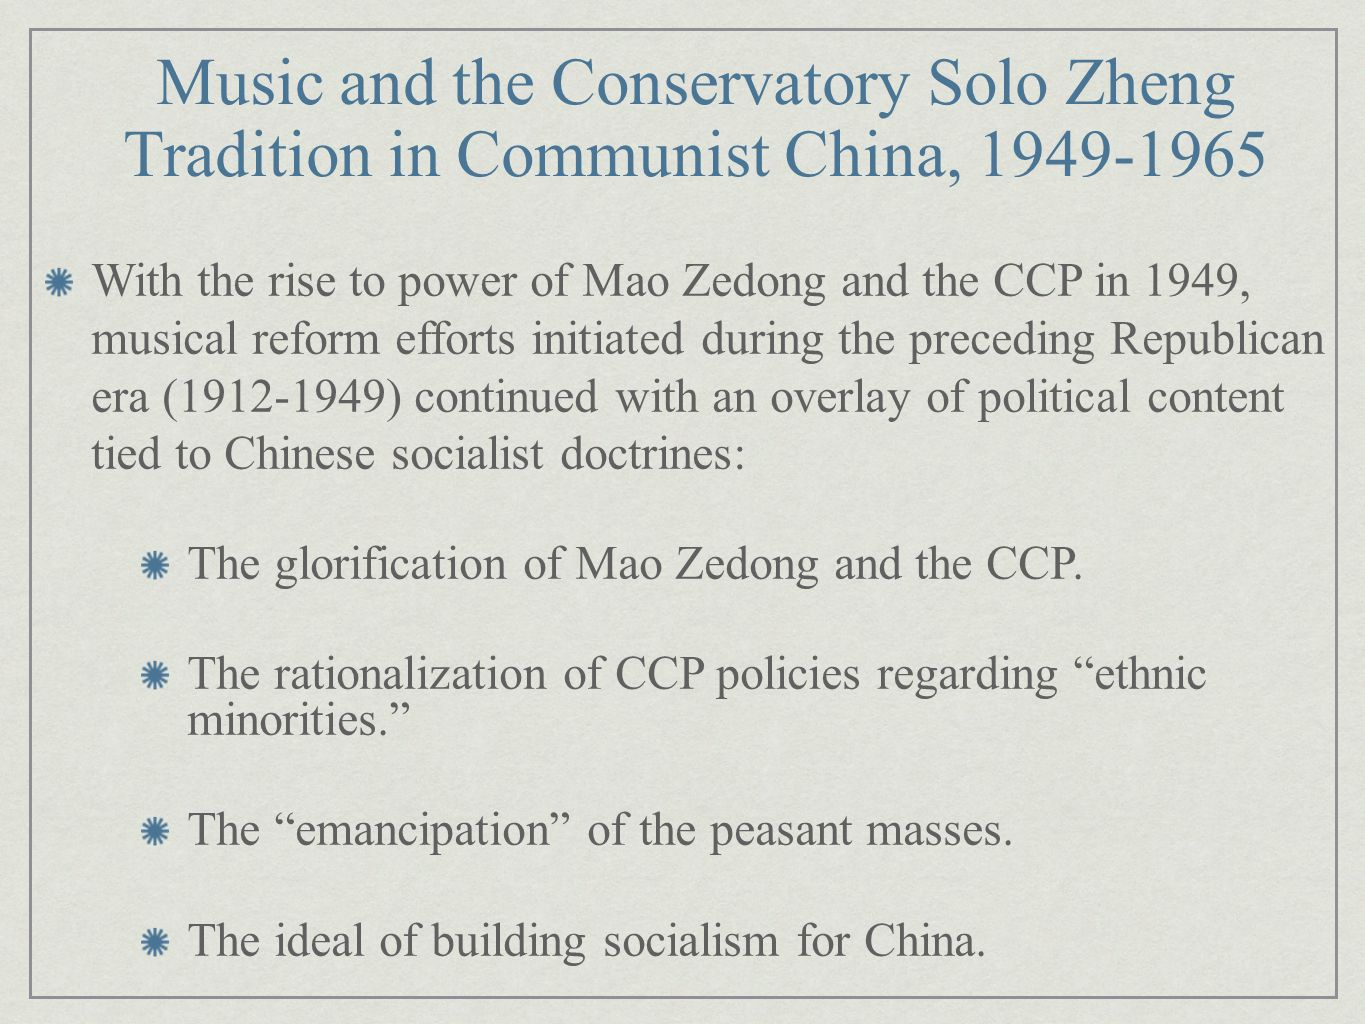 Music and the Conservatory Solo Zheng Tradition in Communist China, 1949-1965